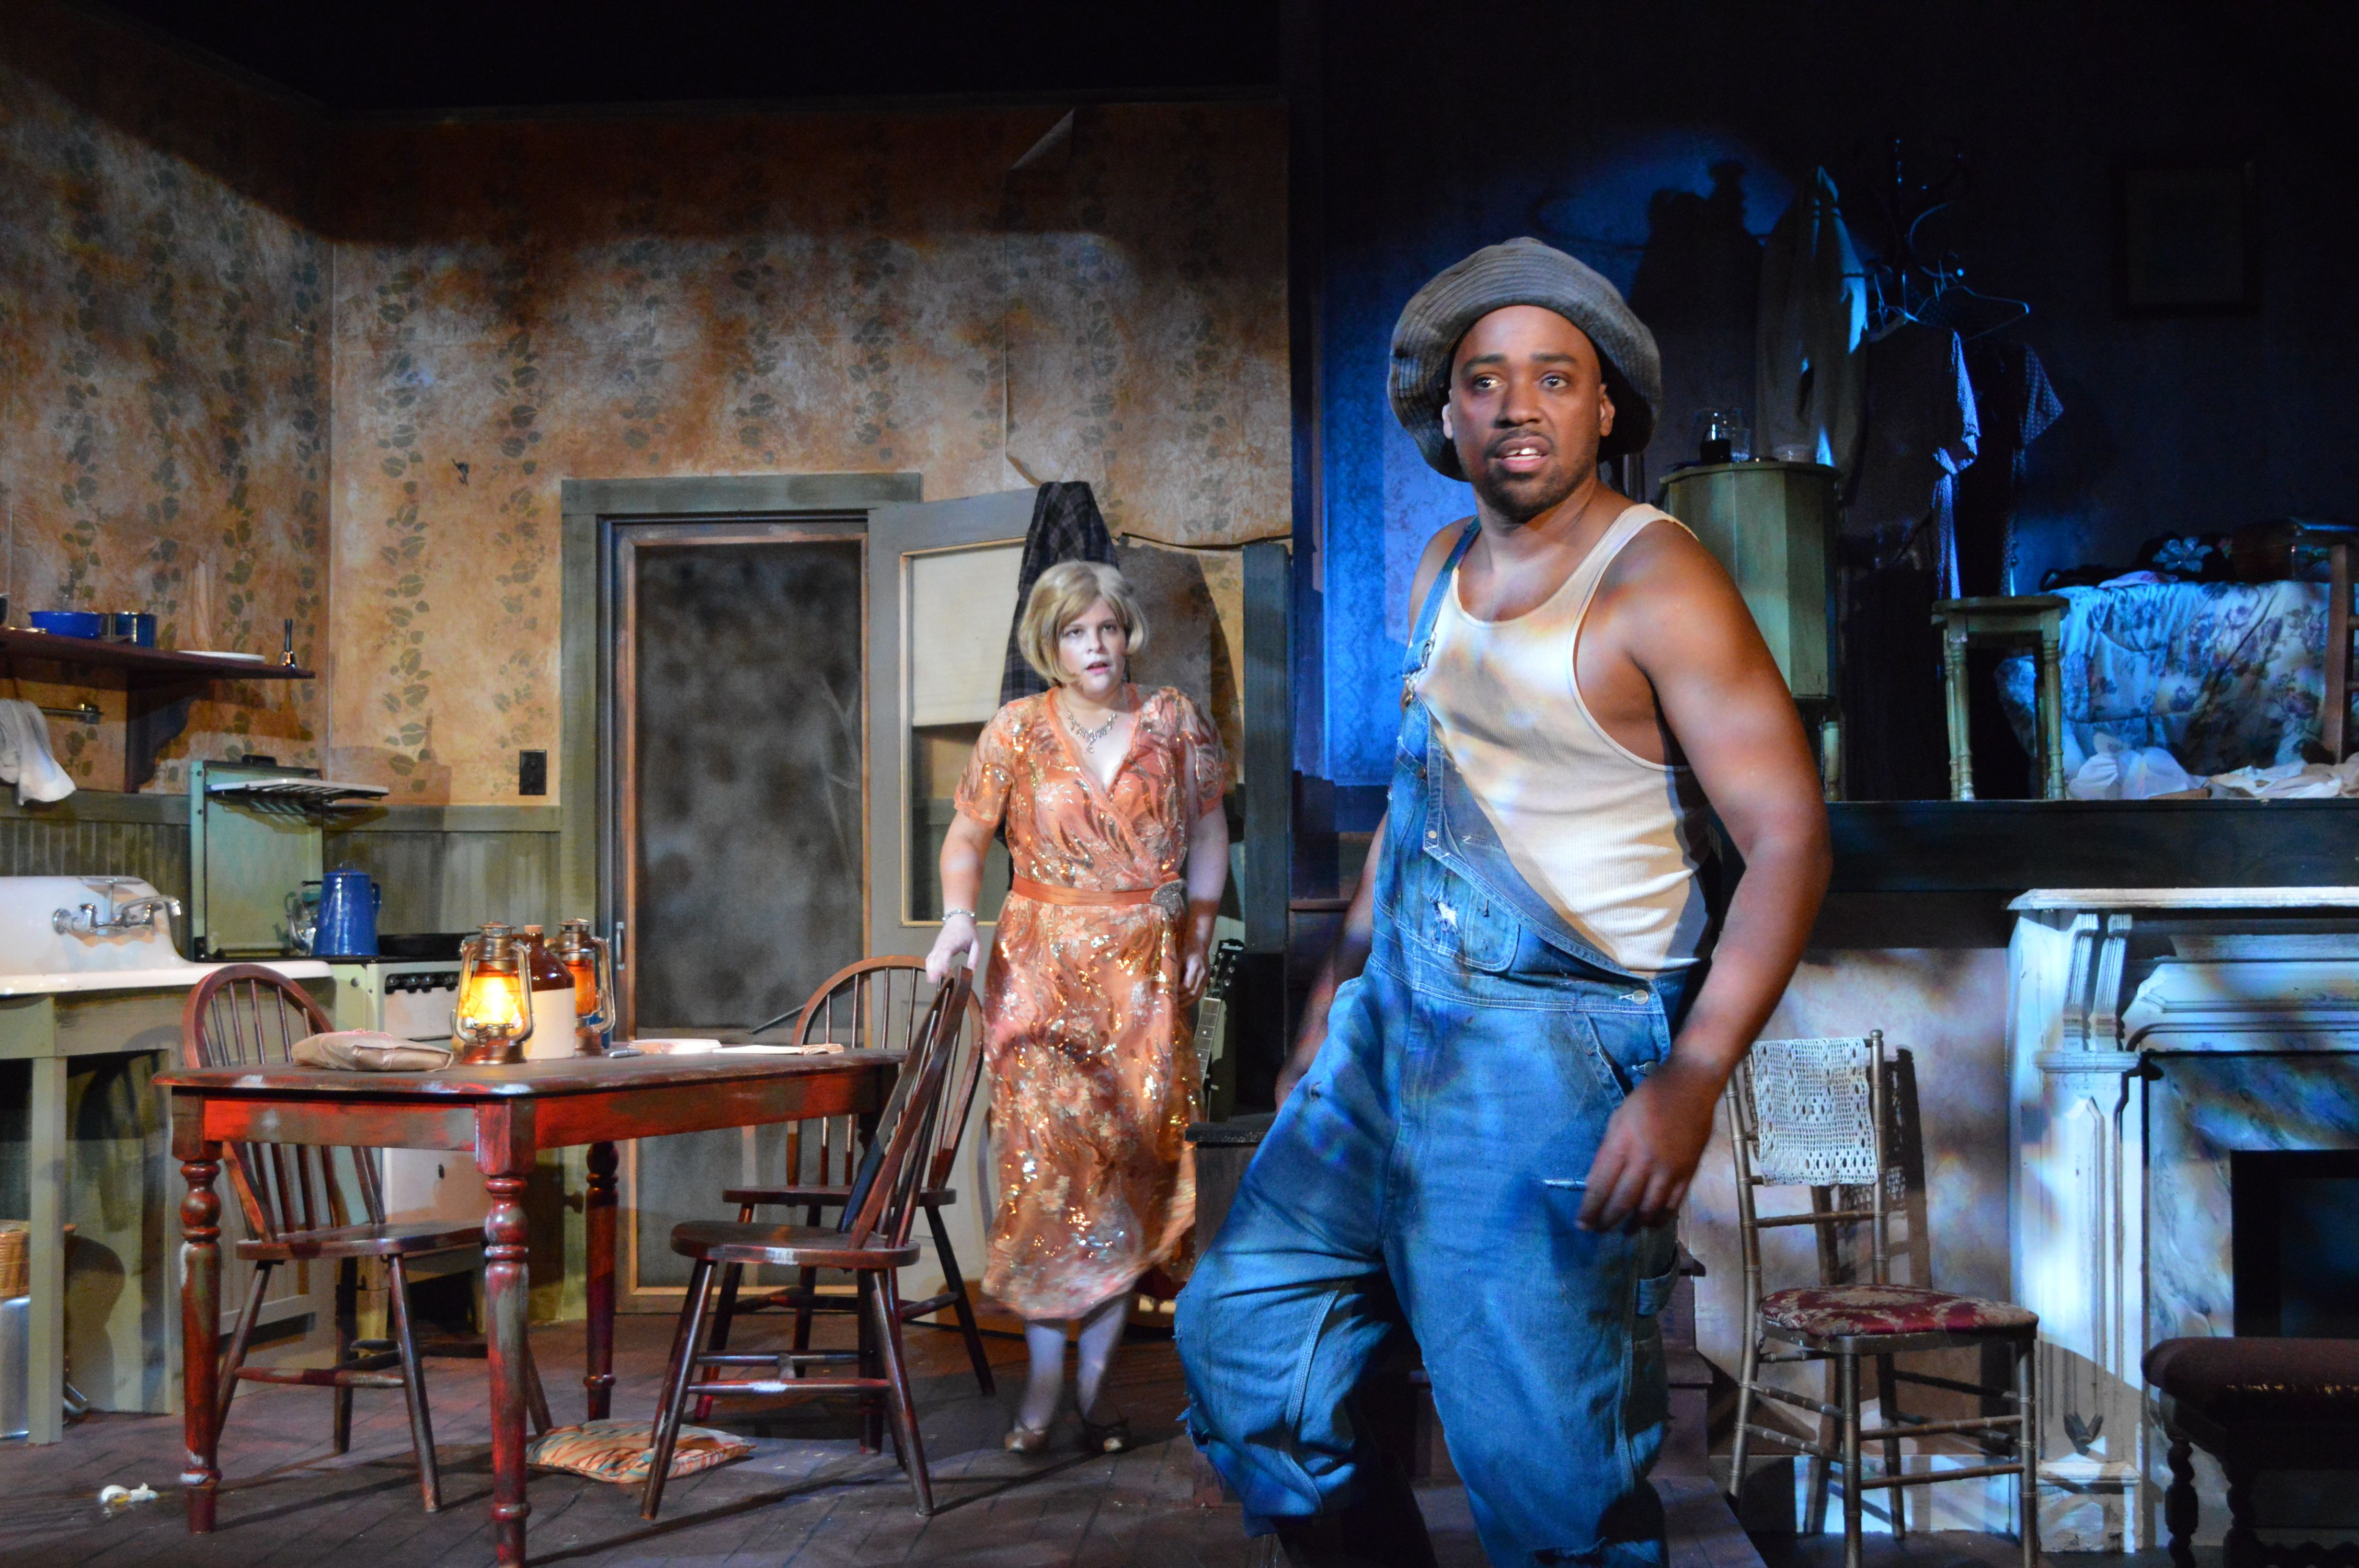 south camden theatre company opens its Once known as south camden and now board president of the south camden theater company, which held its first performances in the philly bars open.